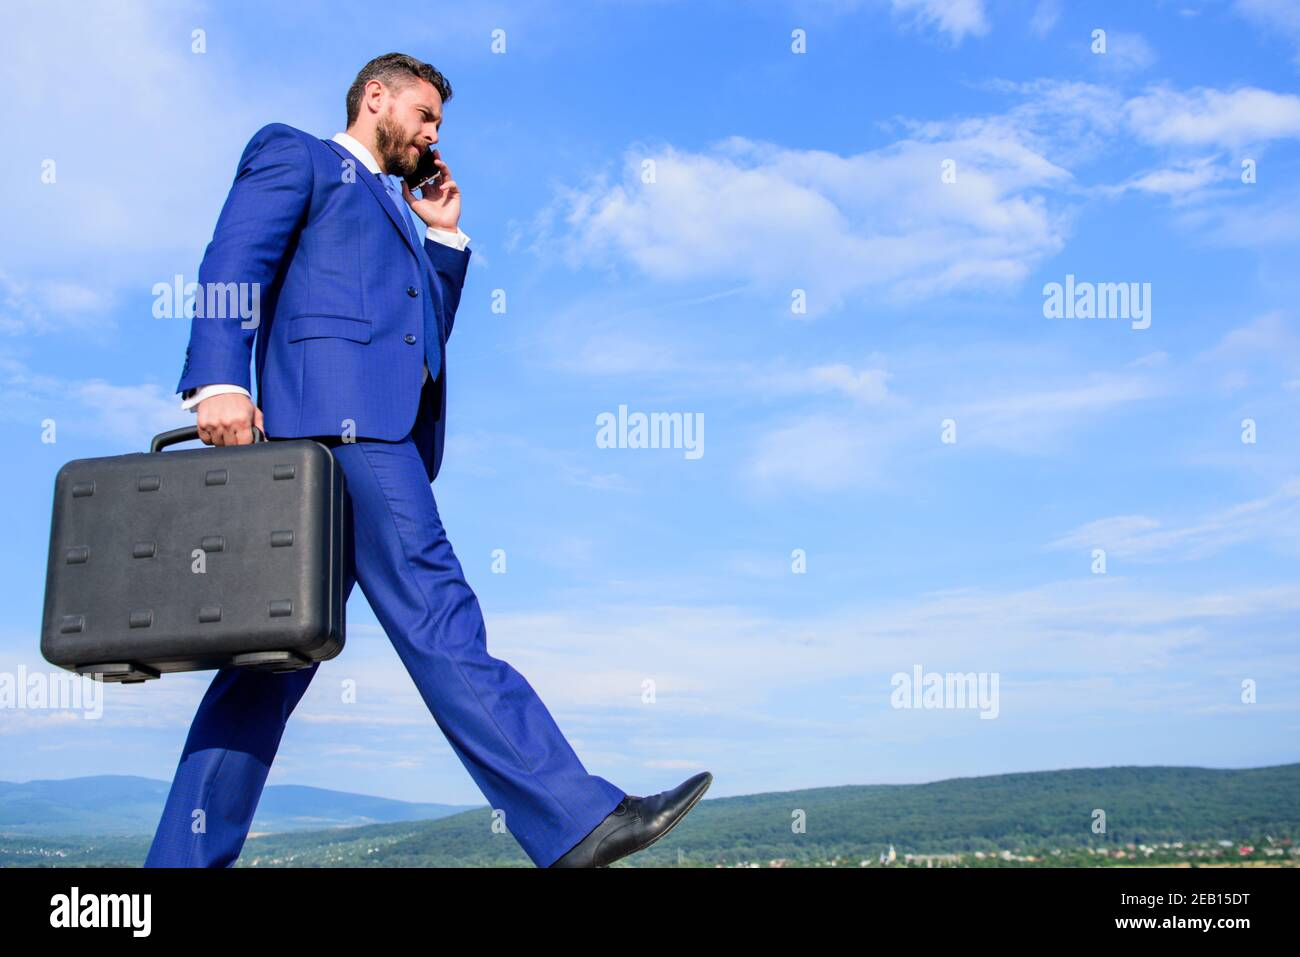 Keep going towards your goal. Businessman formal suit carries briefcase sky background. Businessman solving business problems on phone. Never stop. Entrepreneur in motion purposeful expression. Stock Photo